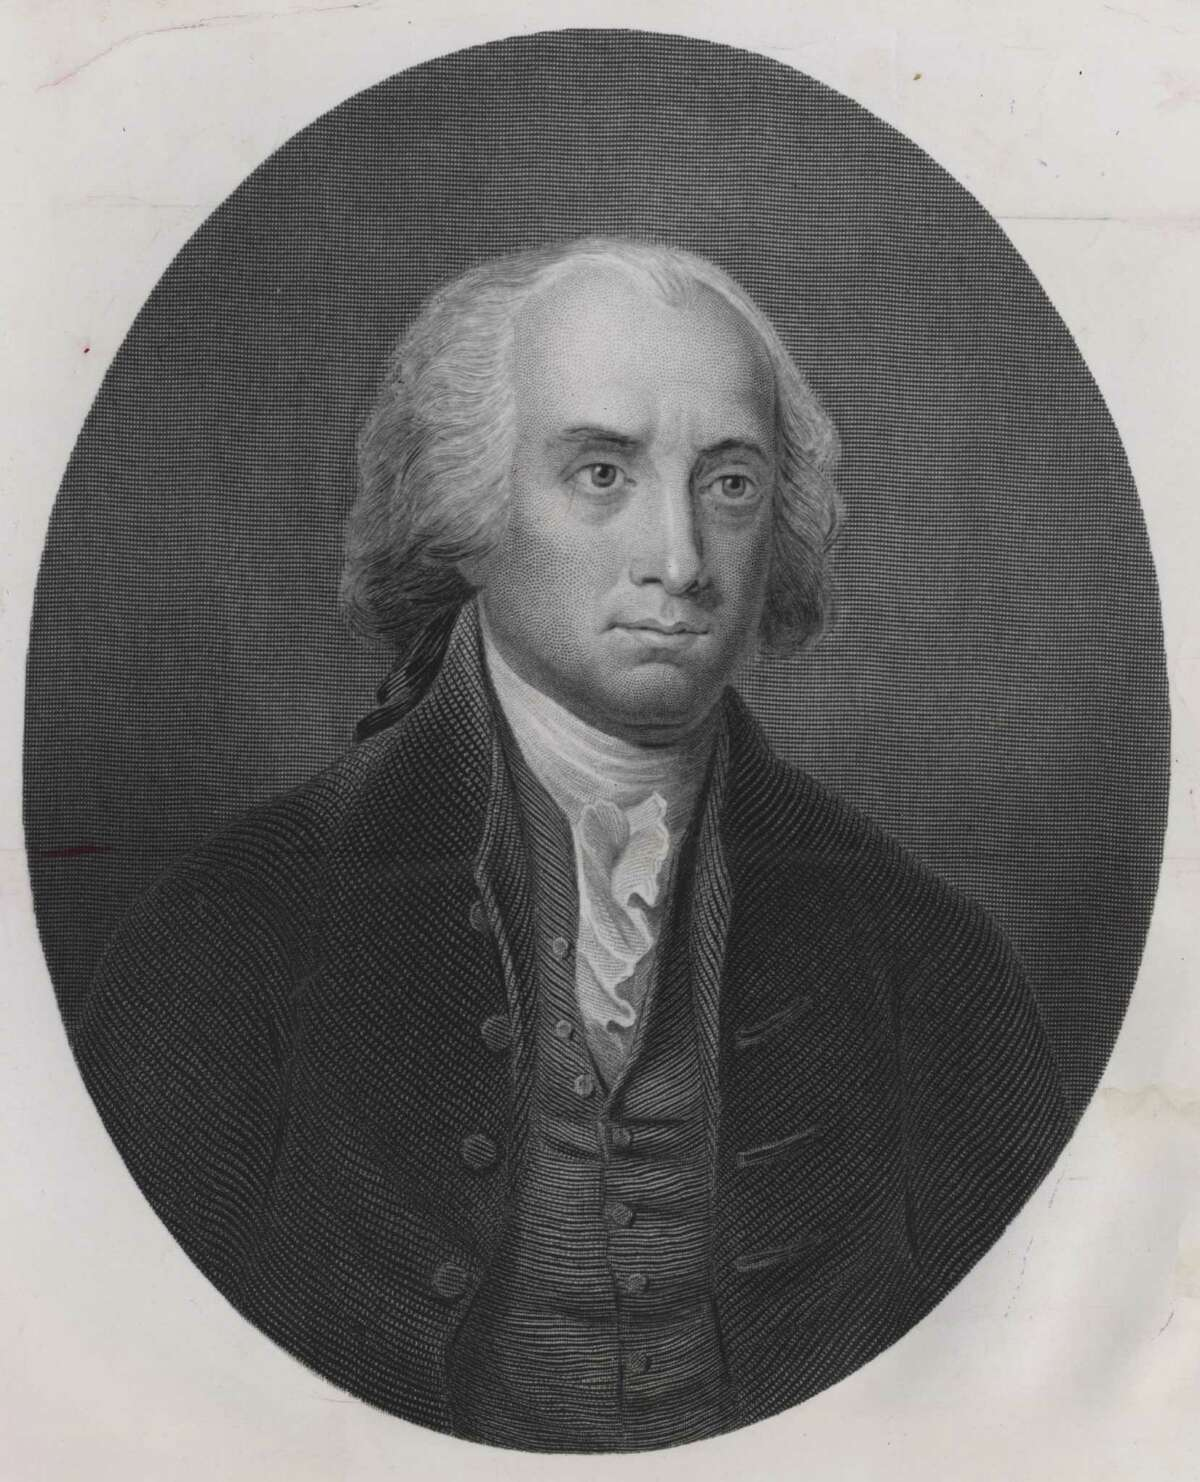 This etching shows President James Madison during his years in the White House.